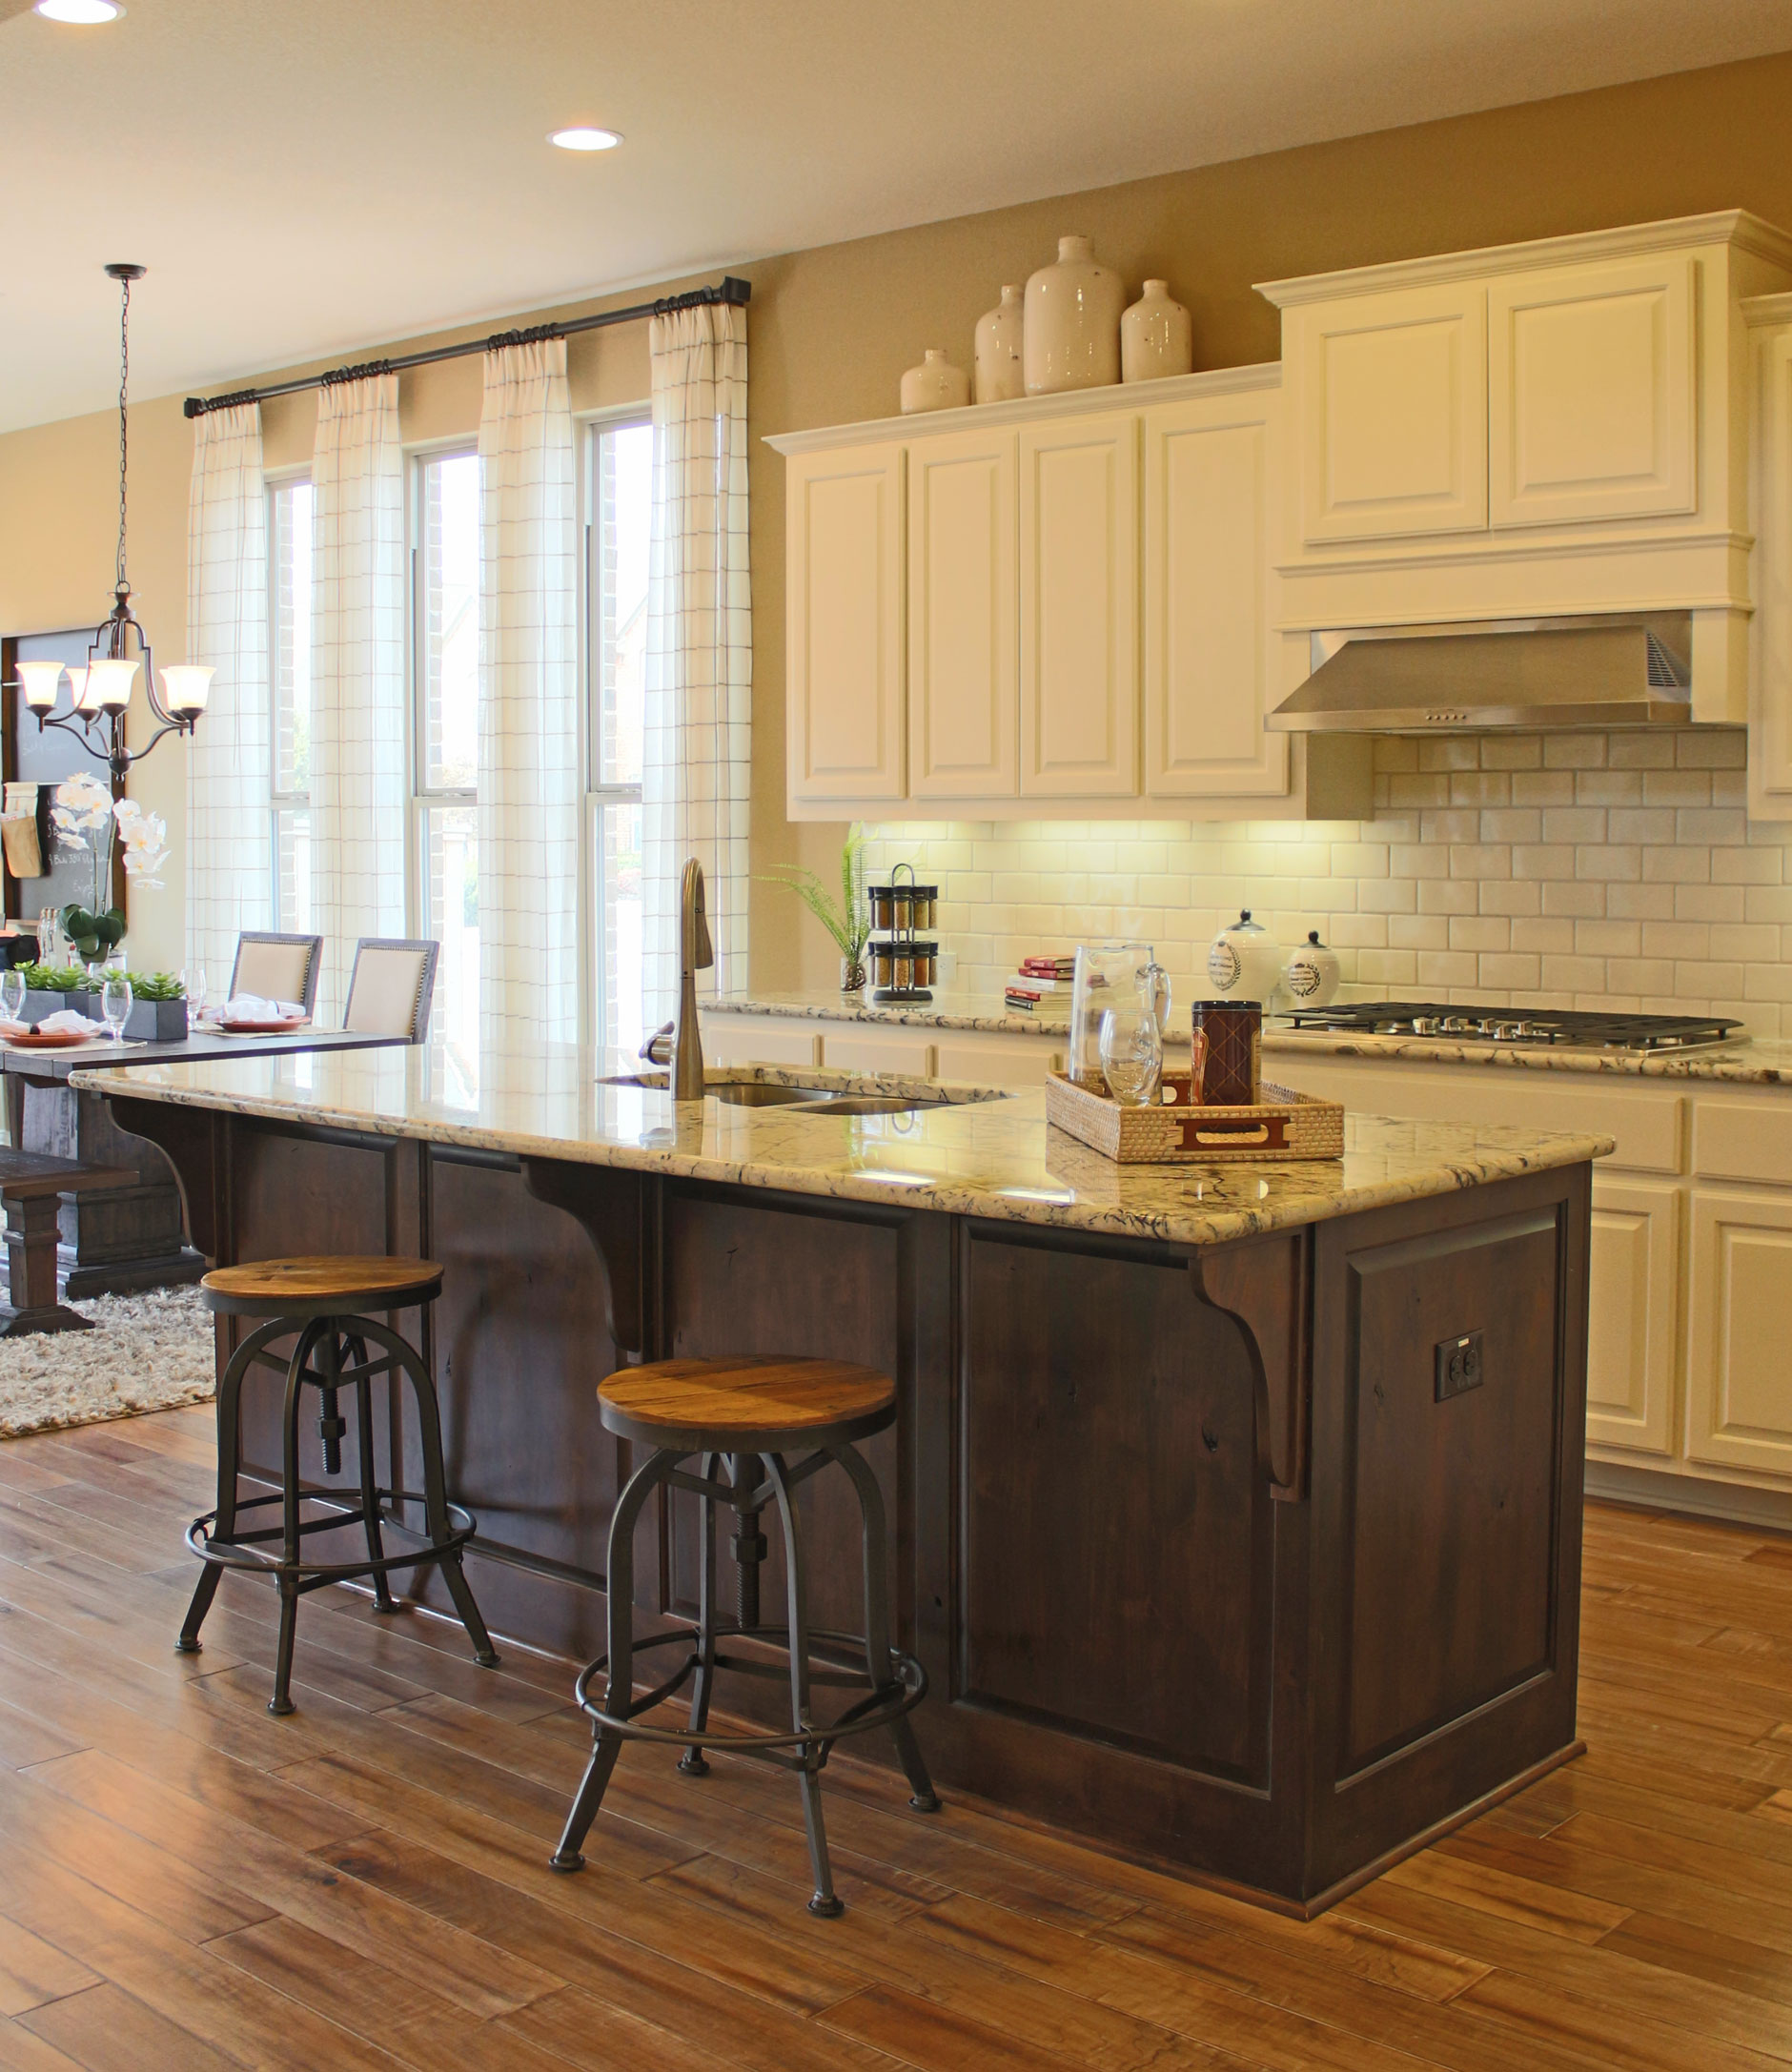 Should Cabinets Match Throughout House Burrows Cabinets